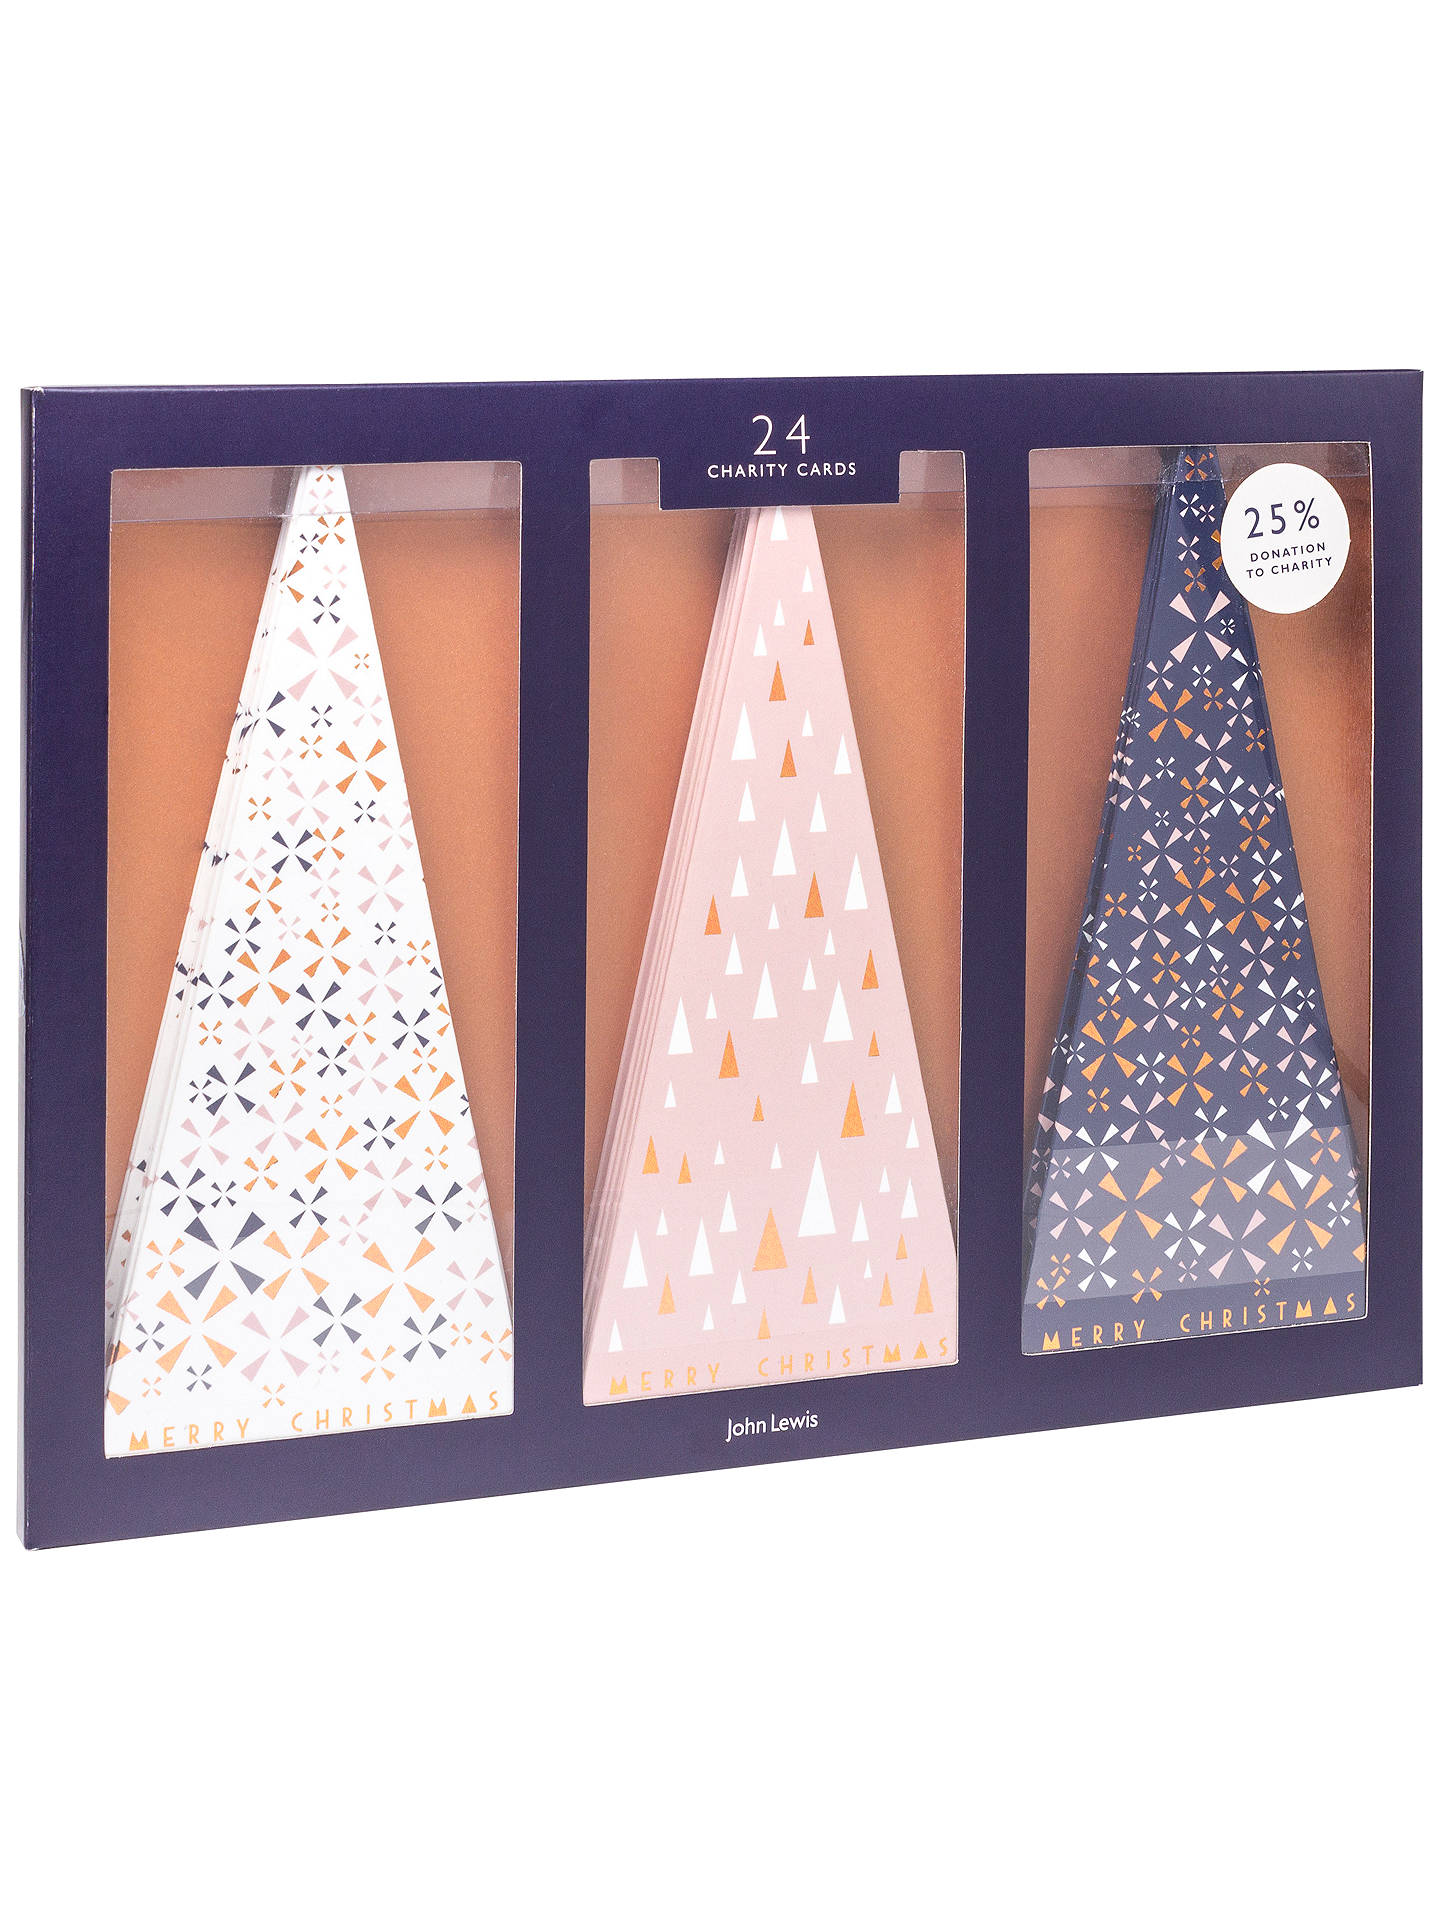 John Lewis Helsinki Trees Charity Christmas Cards, Pack of 24 at ...